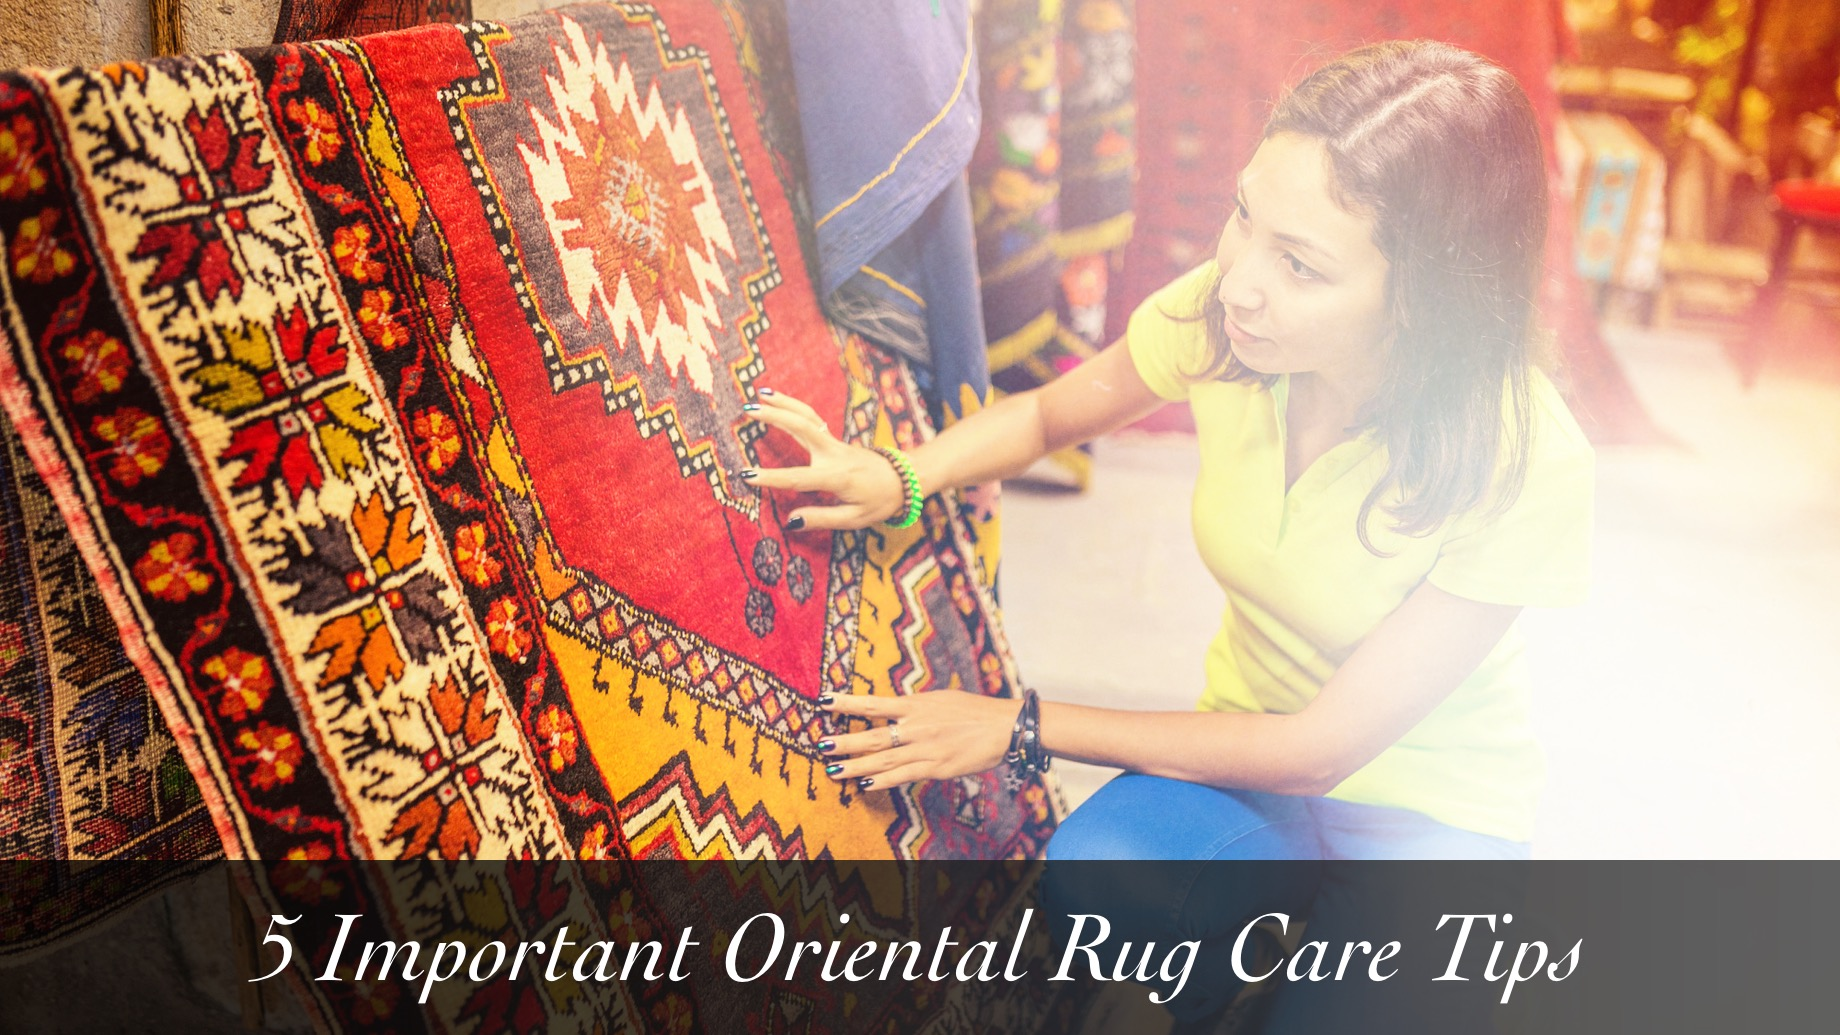 5 Important Oriental Rug Care Tips